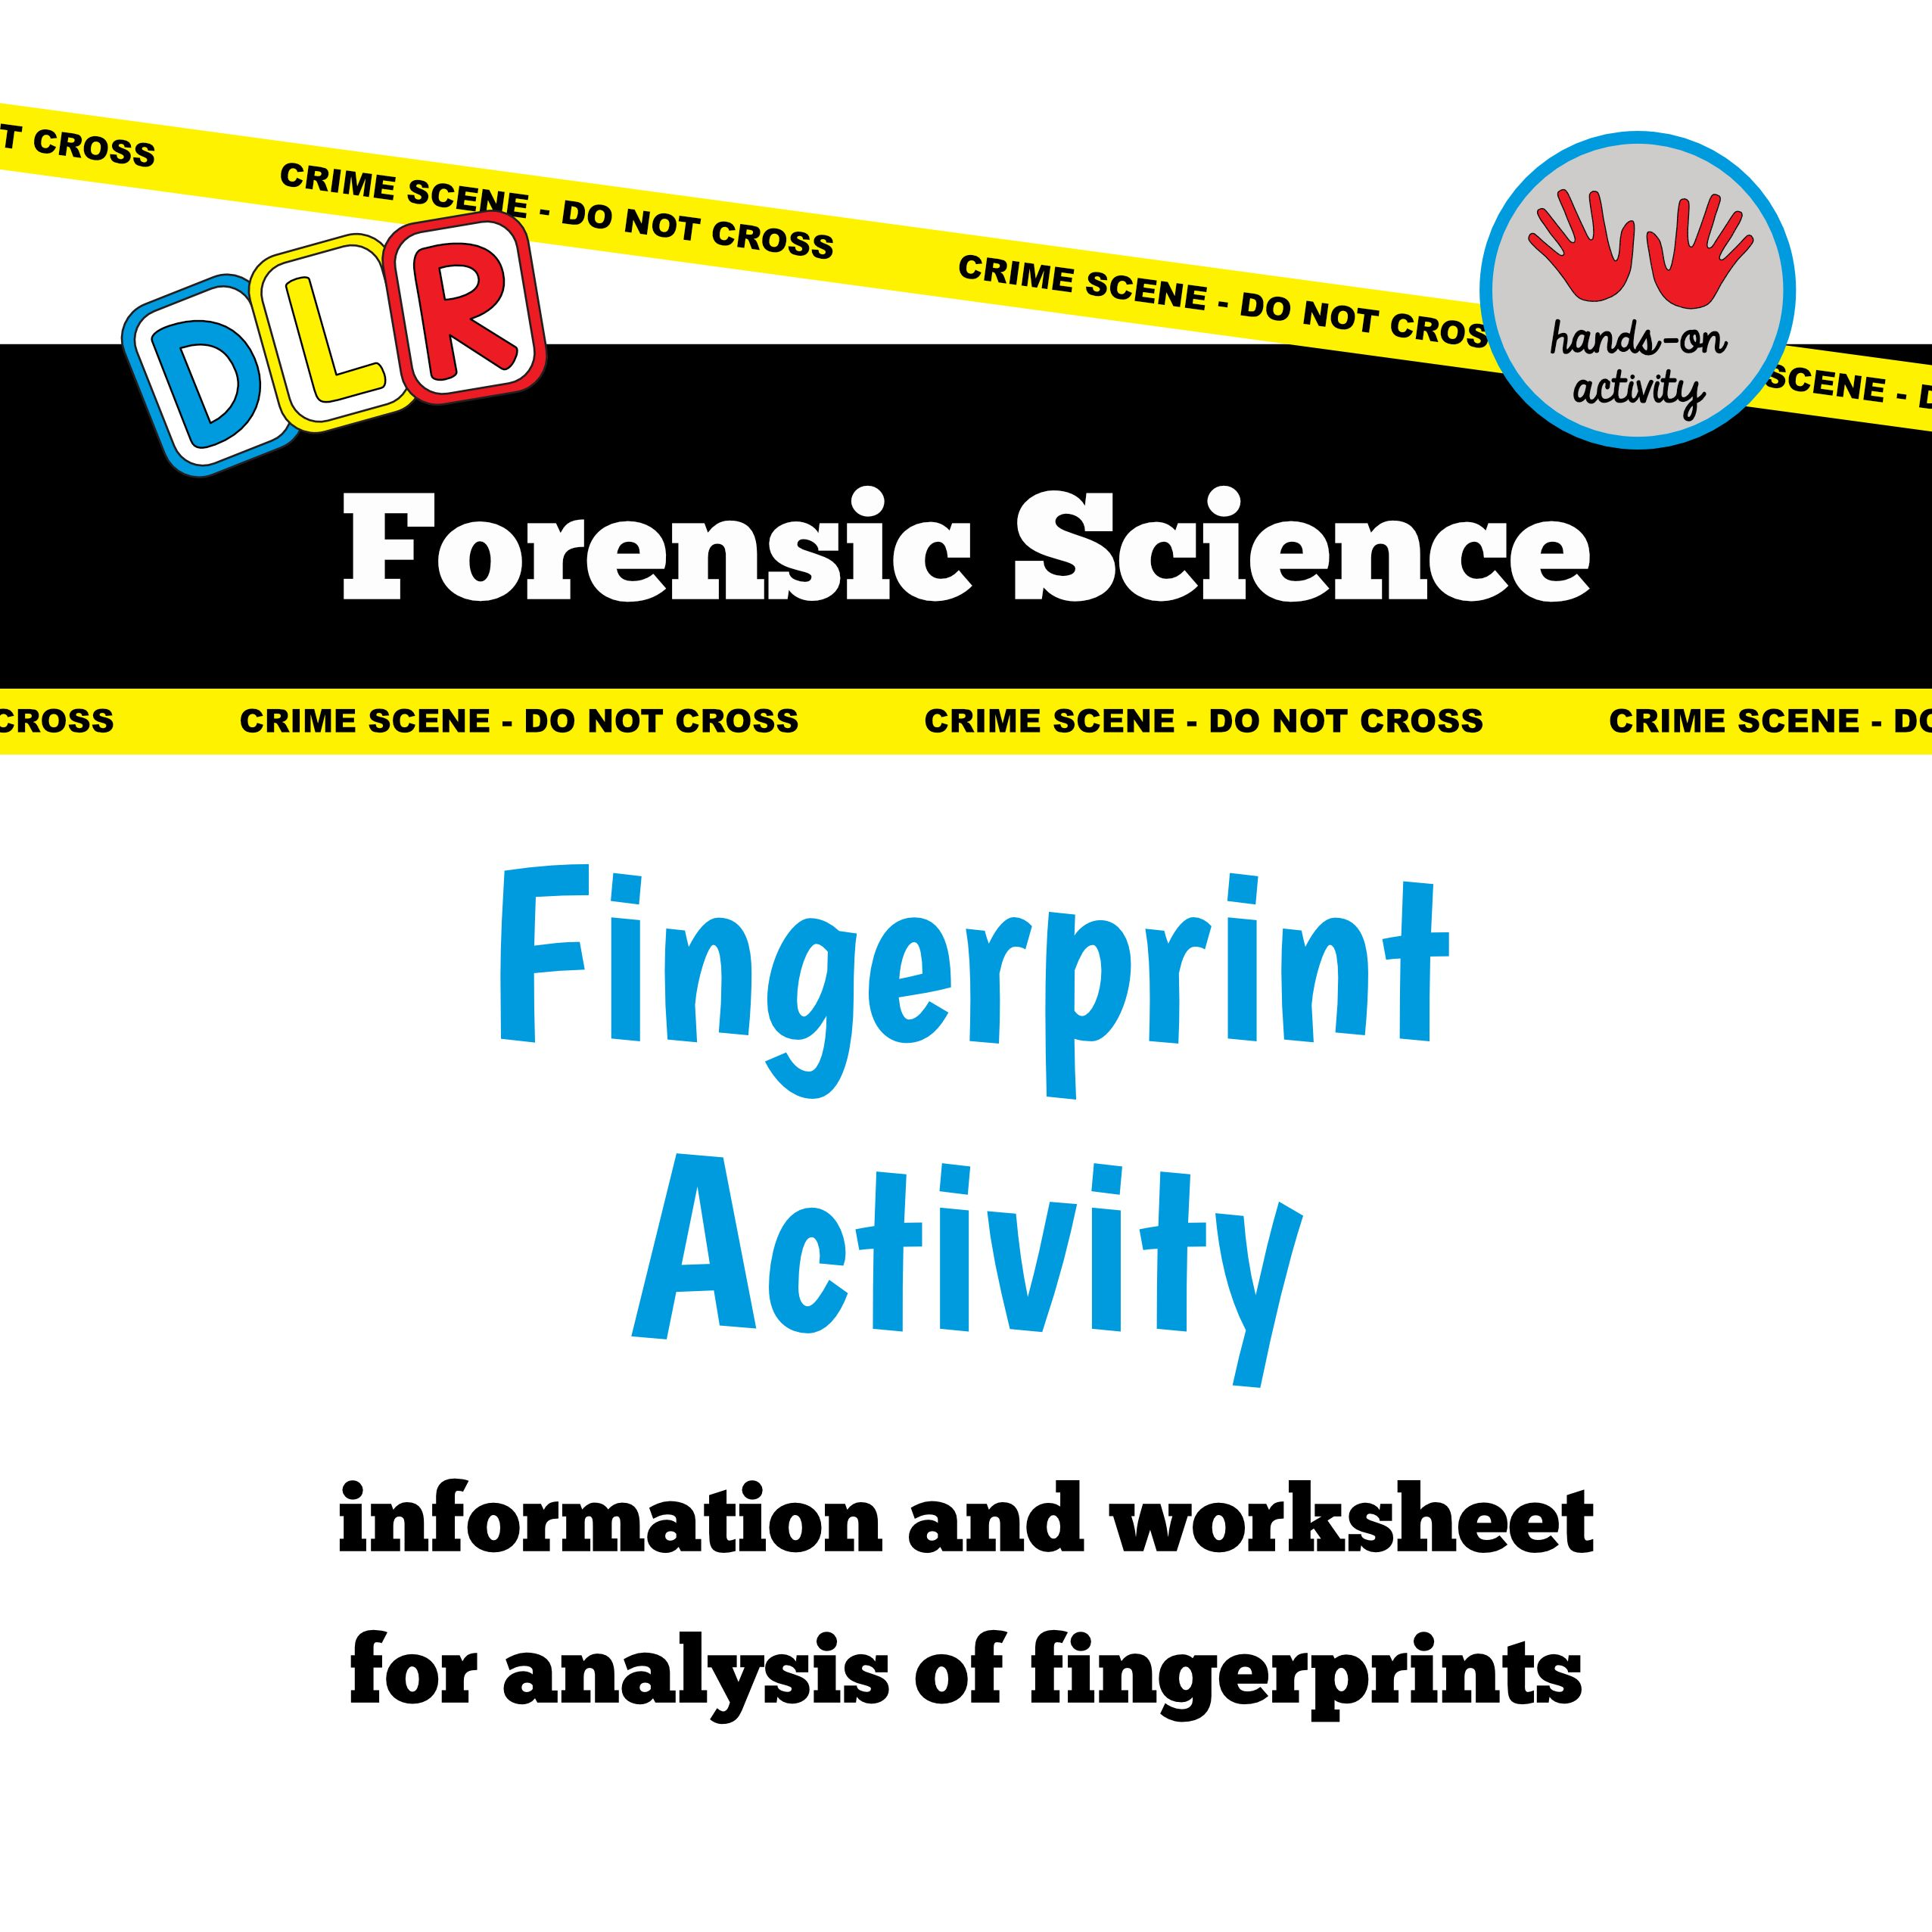 Free Worksheet Forensic Entomology Worksheet forensic science gingerbread house mystery 3d model activity free worksheet fingerprint